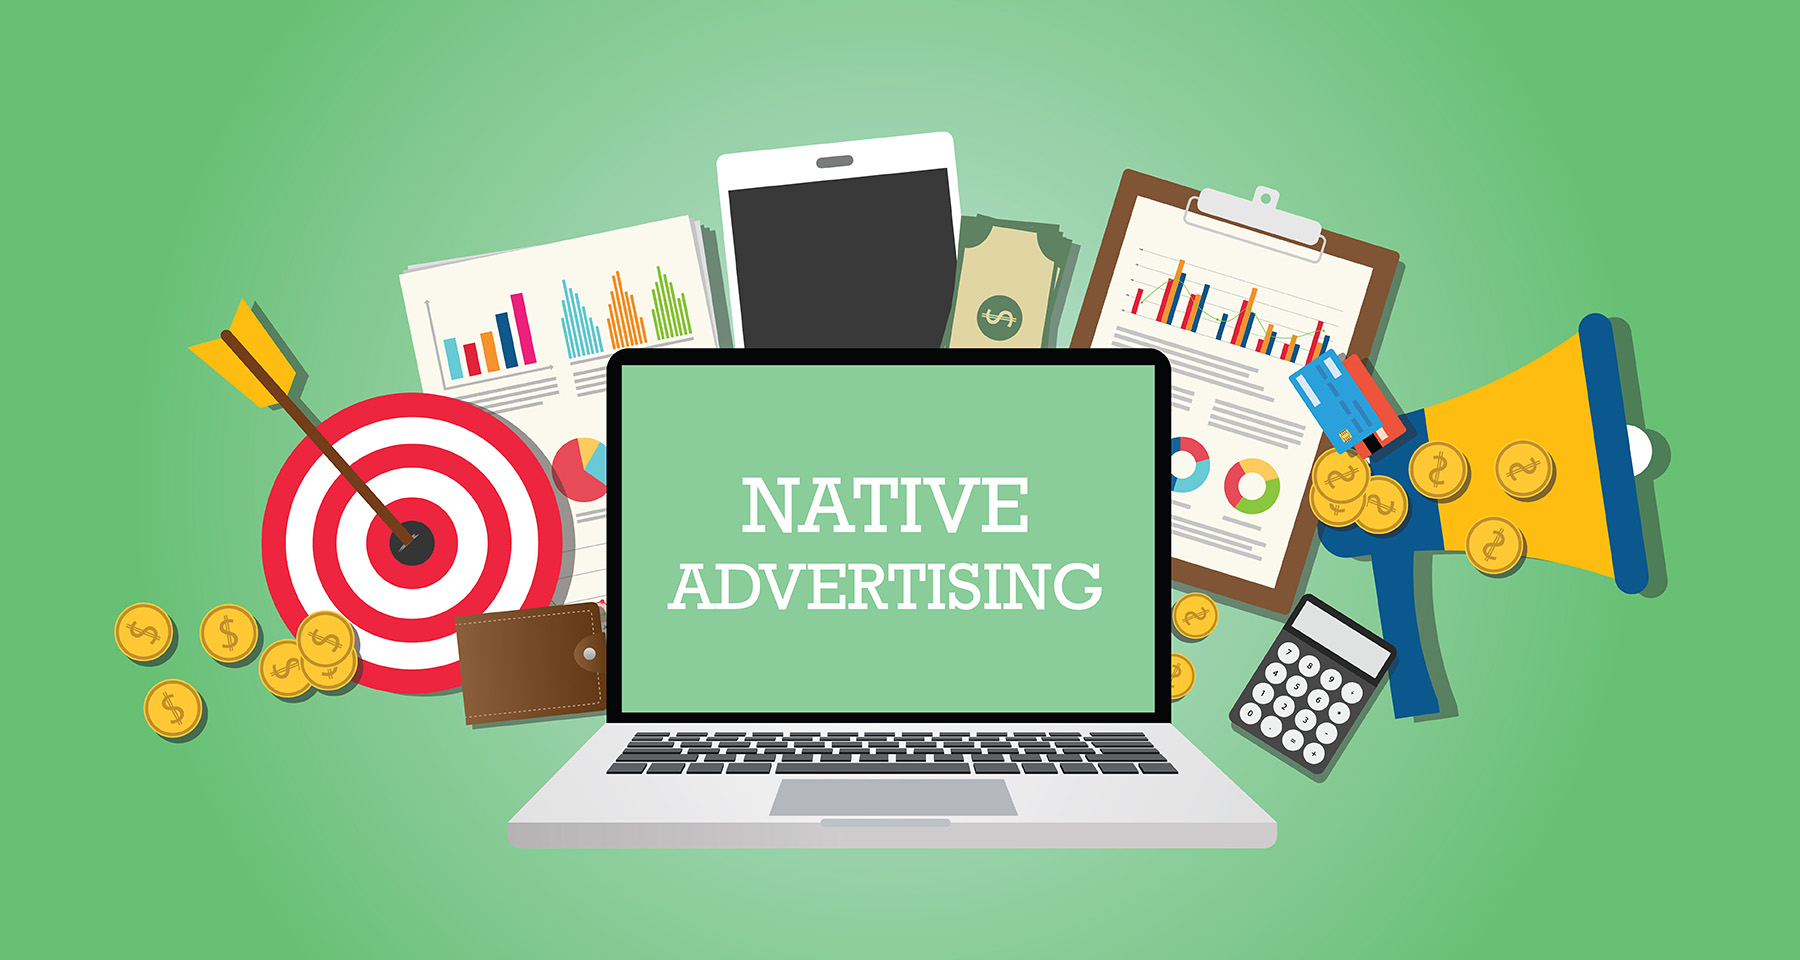 News companies don't need to compromise editorial integrity for native advertising